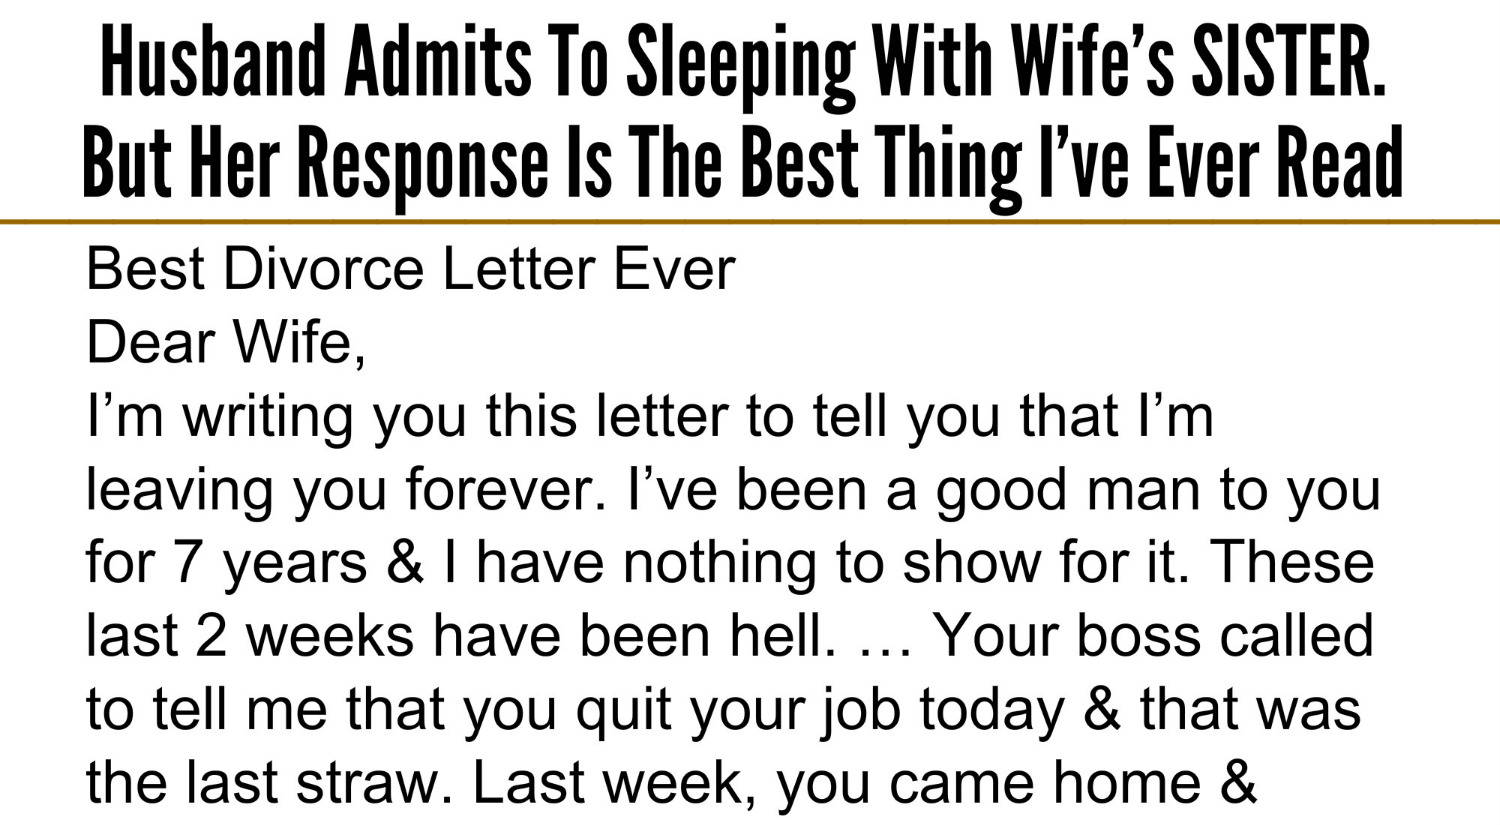 best divorce letter ever beautiful quotes husband admits to sleeping with s 20587 | .3